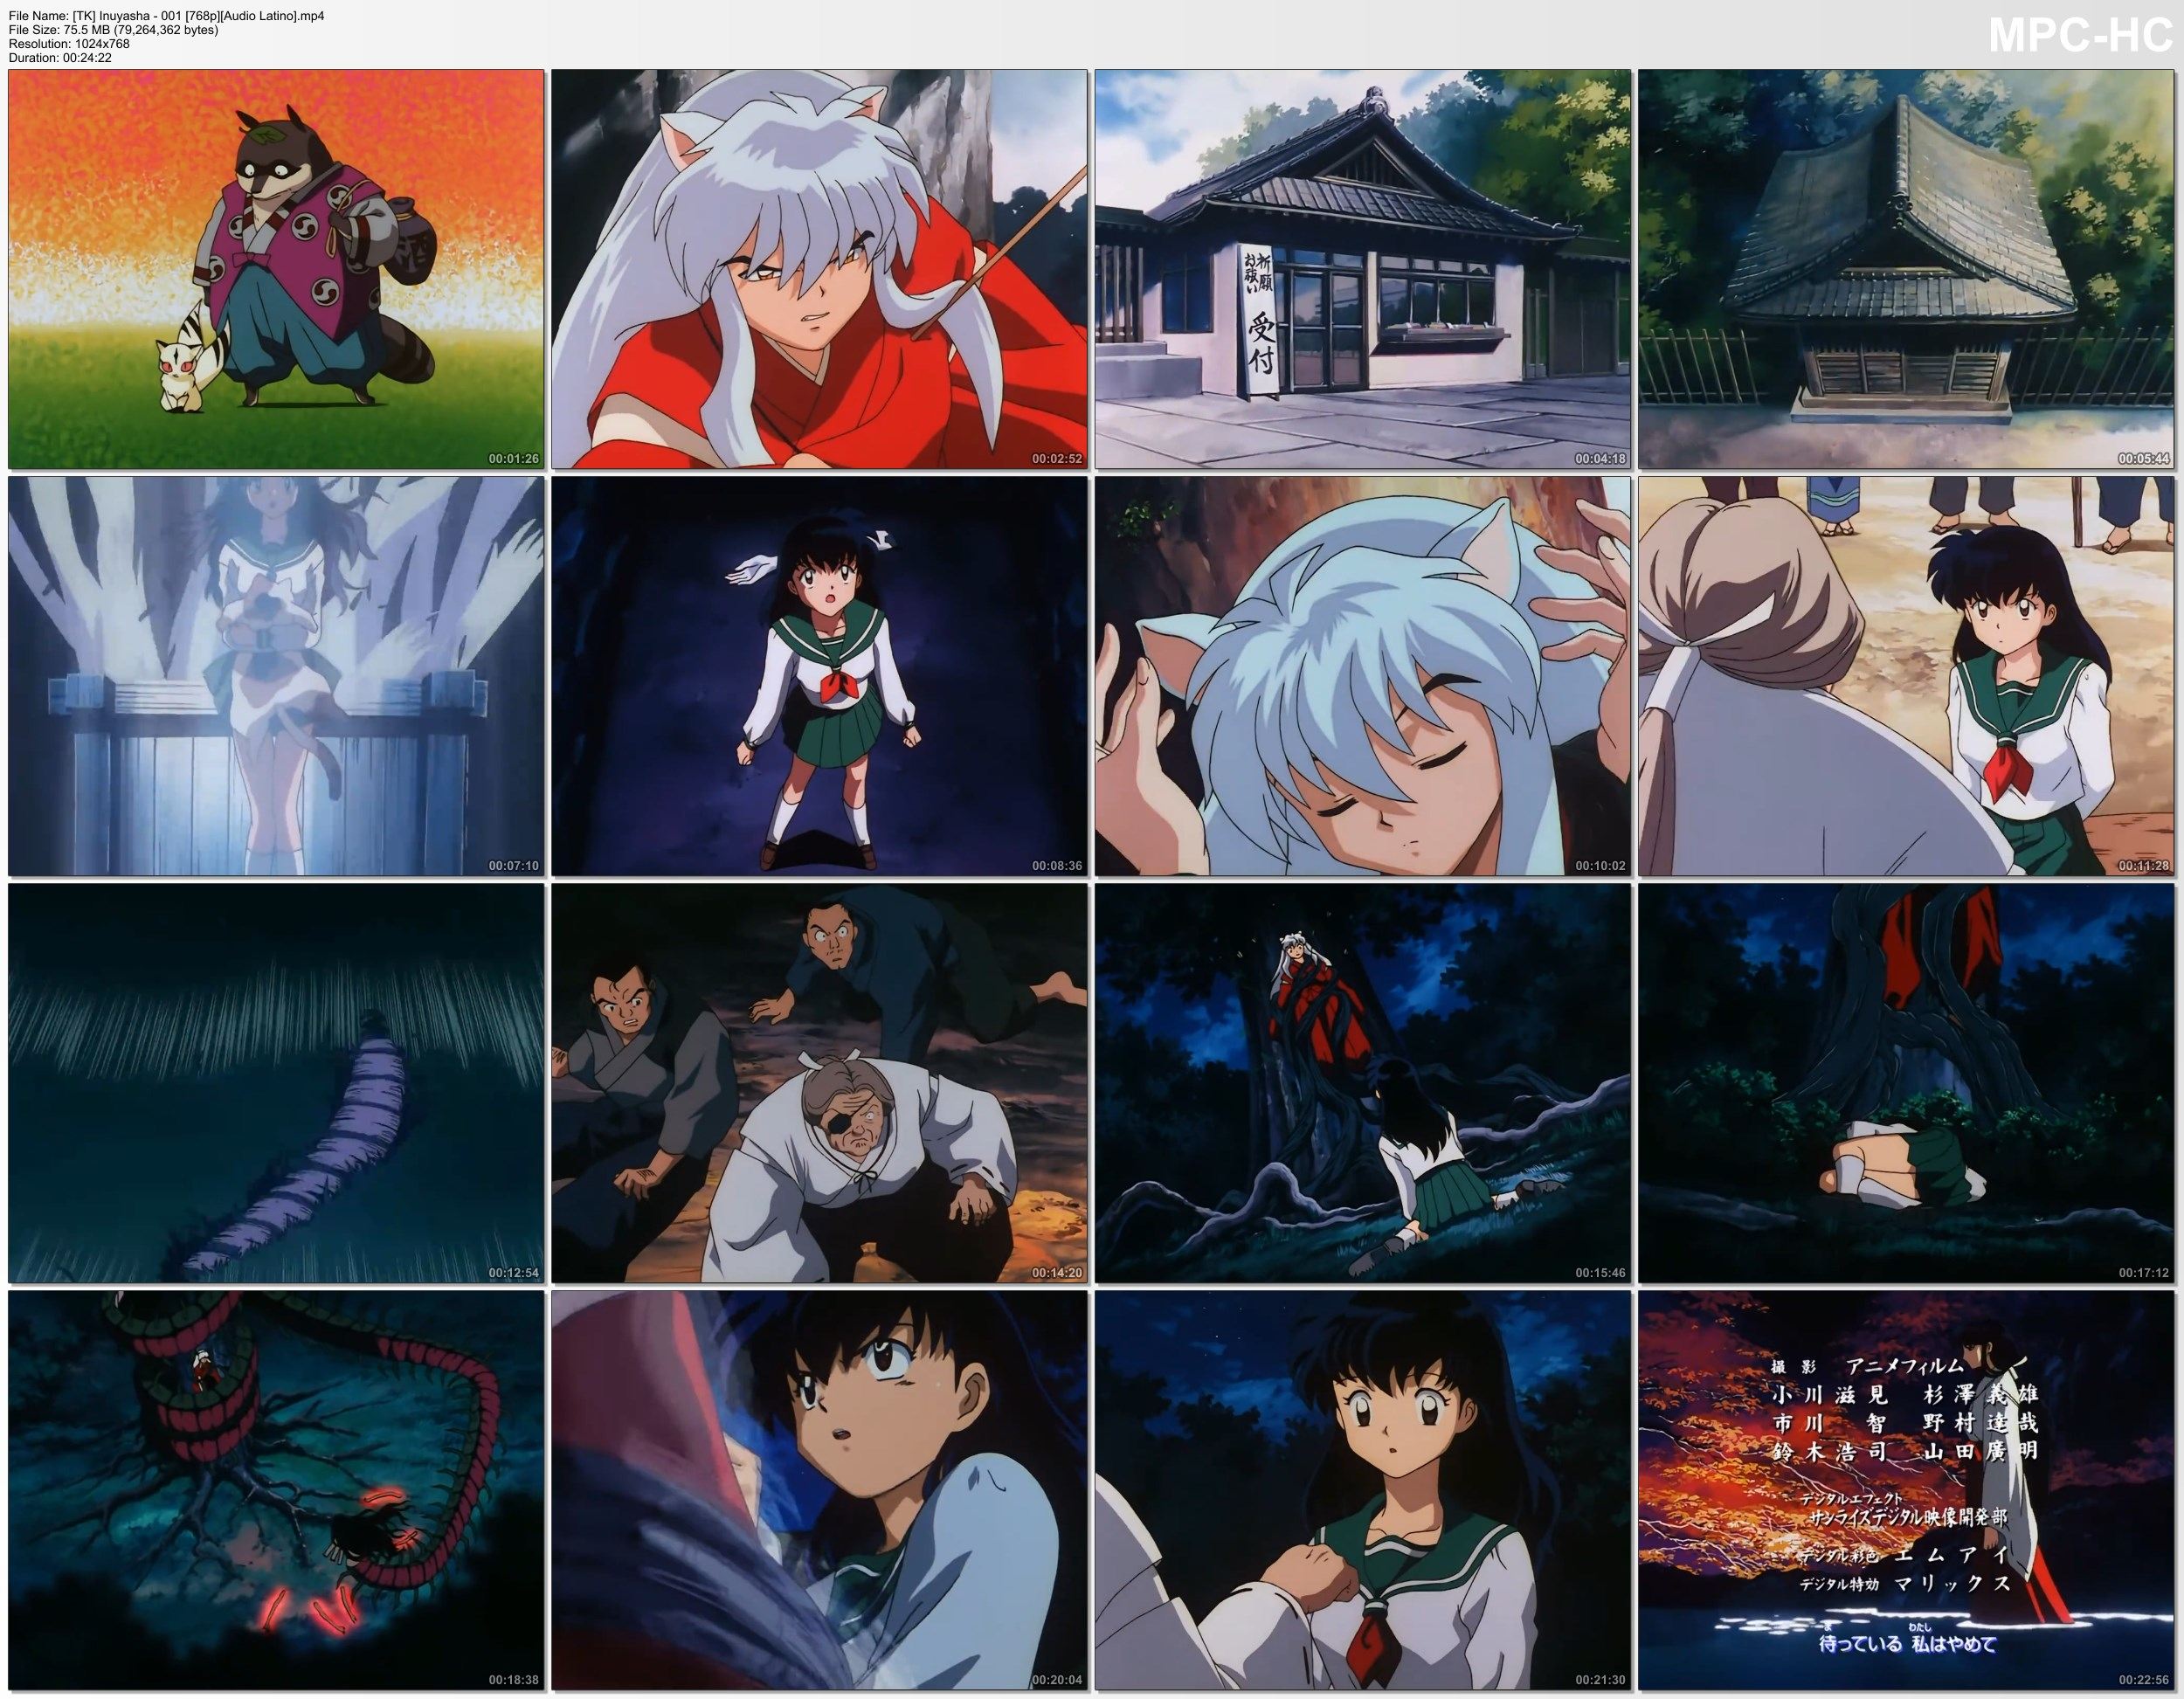 V4yQL46GVZVnB - [Aporte] InuYasha [153/167][Audio Latino][75MB][768p]DVD-Box][En Encode...] - Anime Ligero [Descargas]